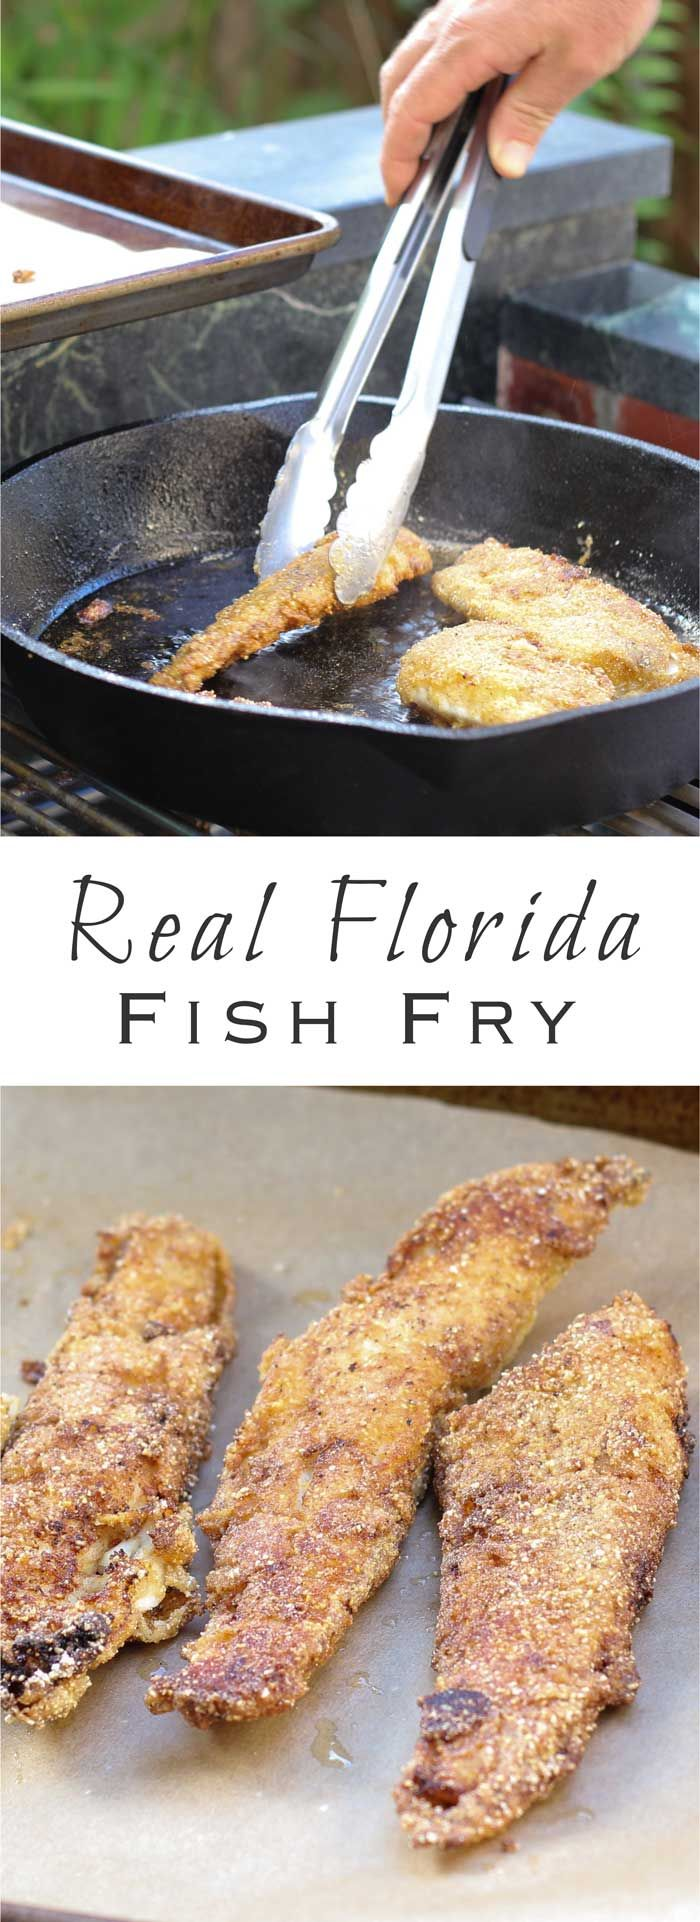 Our traditional recipe for fried fish with cornmeal, perfect for redfish, trout, snook, and mullet.